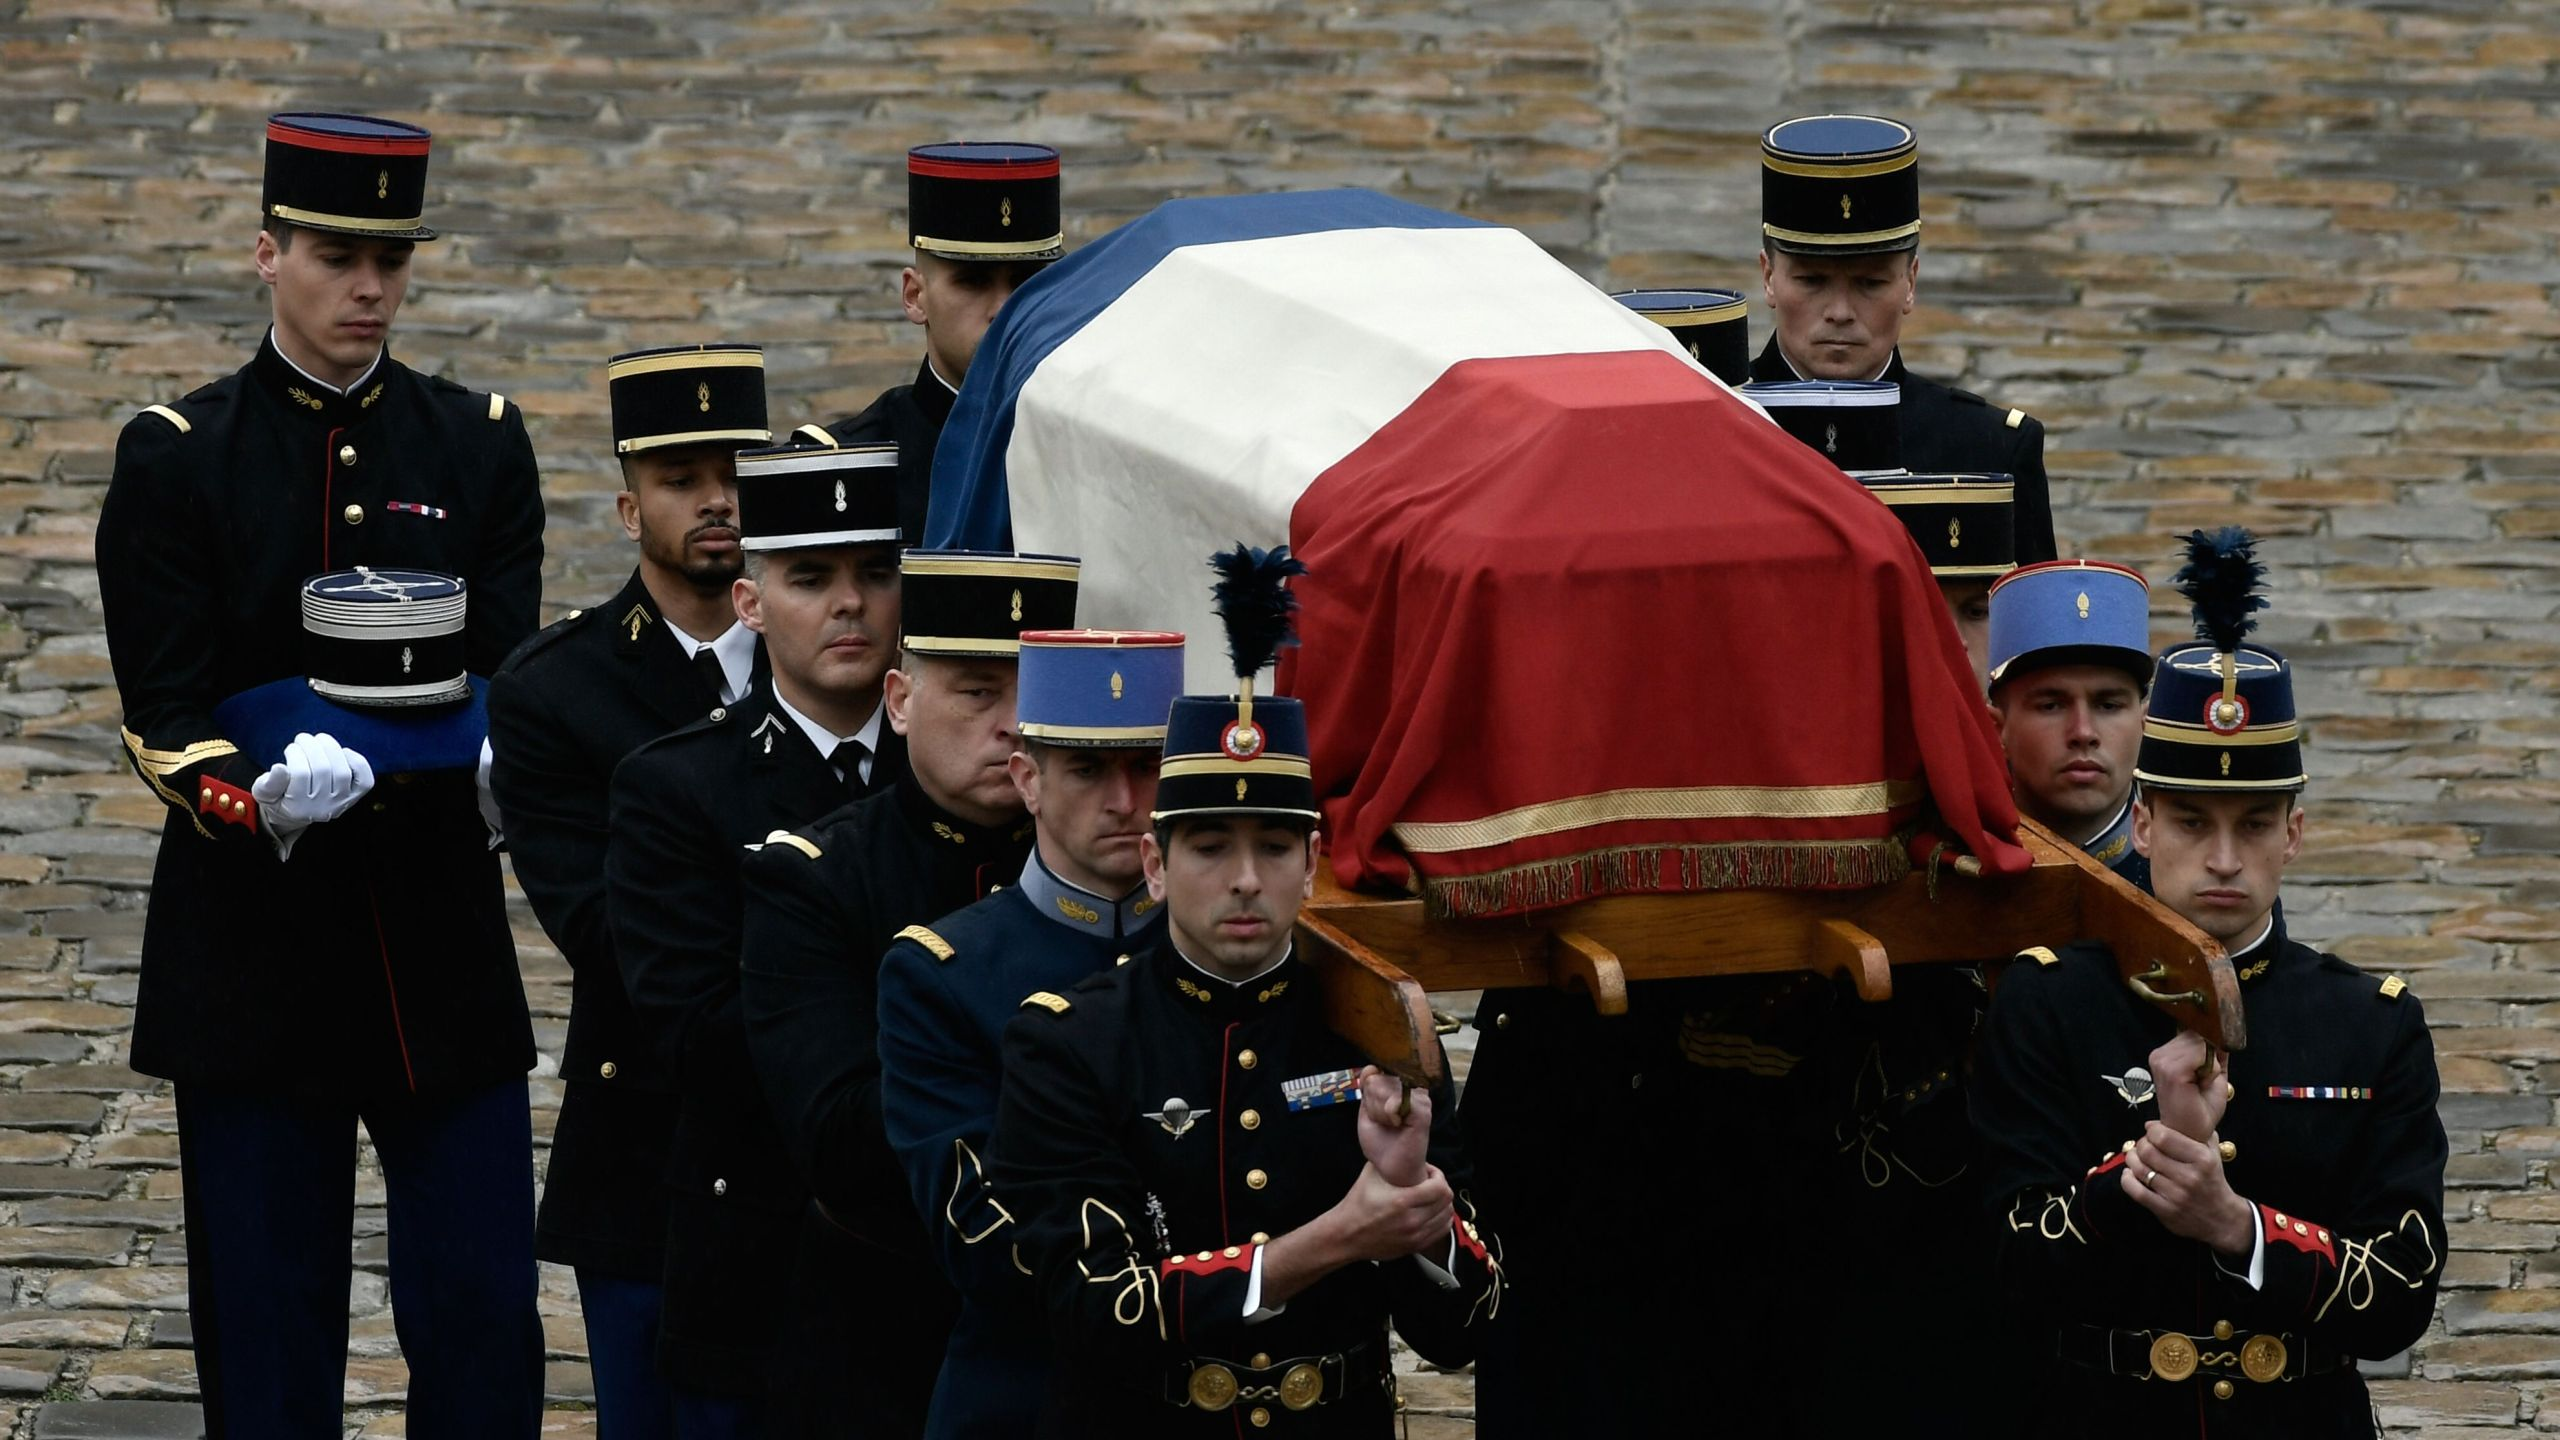 Republican Guards, Gemdarmes and Cadets from the joint-army military school, Ecole Militaire Interarmes, carry the coffin of Lieutenant-Colonel Arnaud Beltrame during a national ceremony on March 28, 2018 at the Hotel des Invalides in Paris. (Credit: PHILIPPE LOPEZ/AFP/Getty Images)